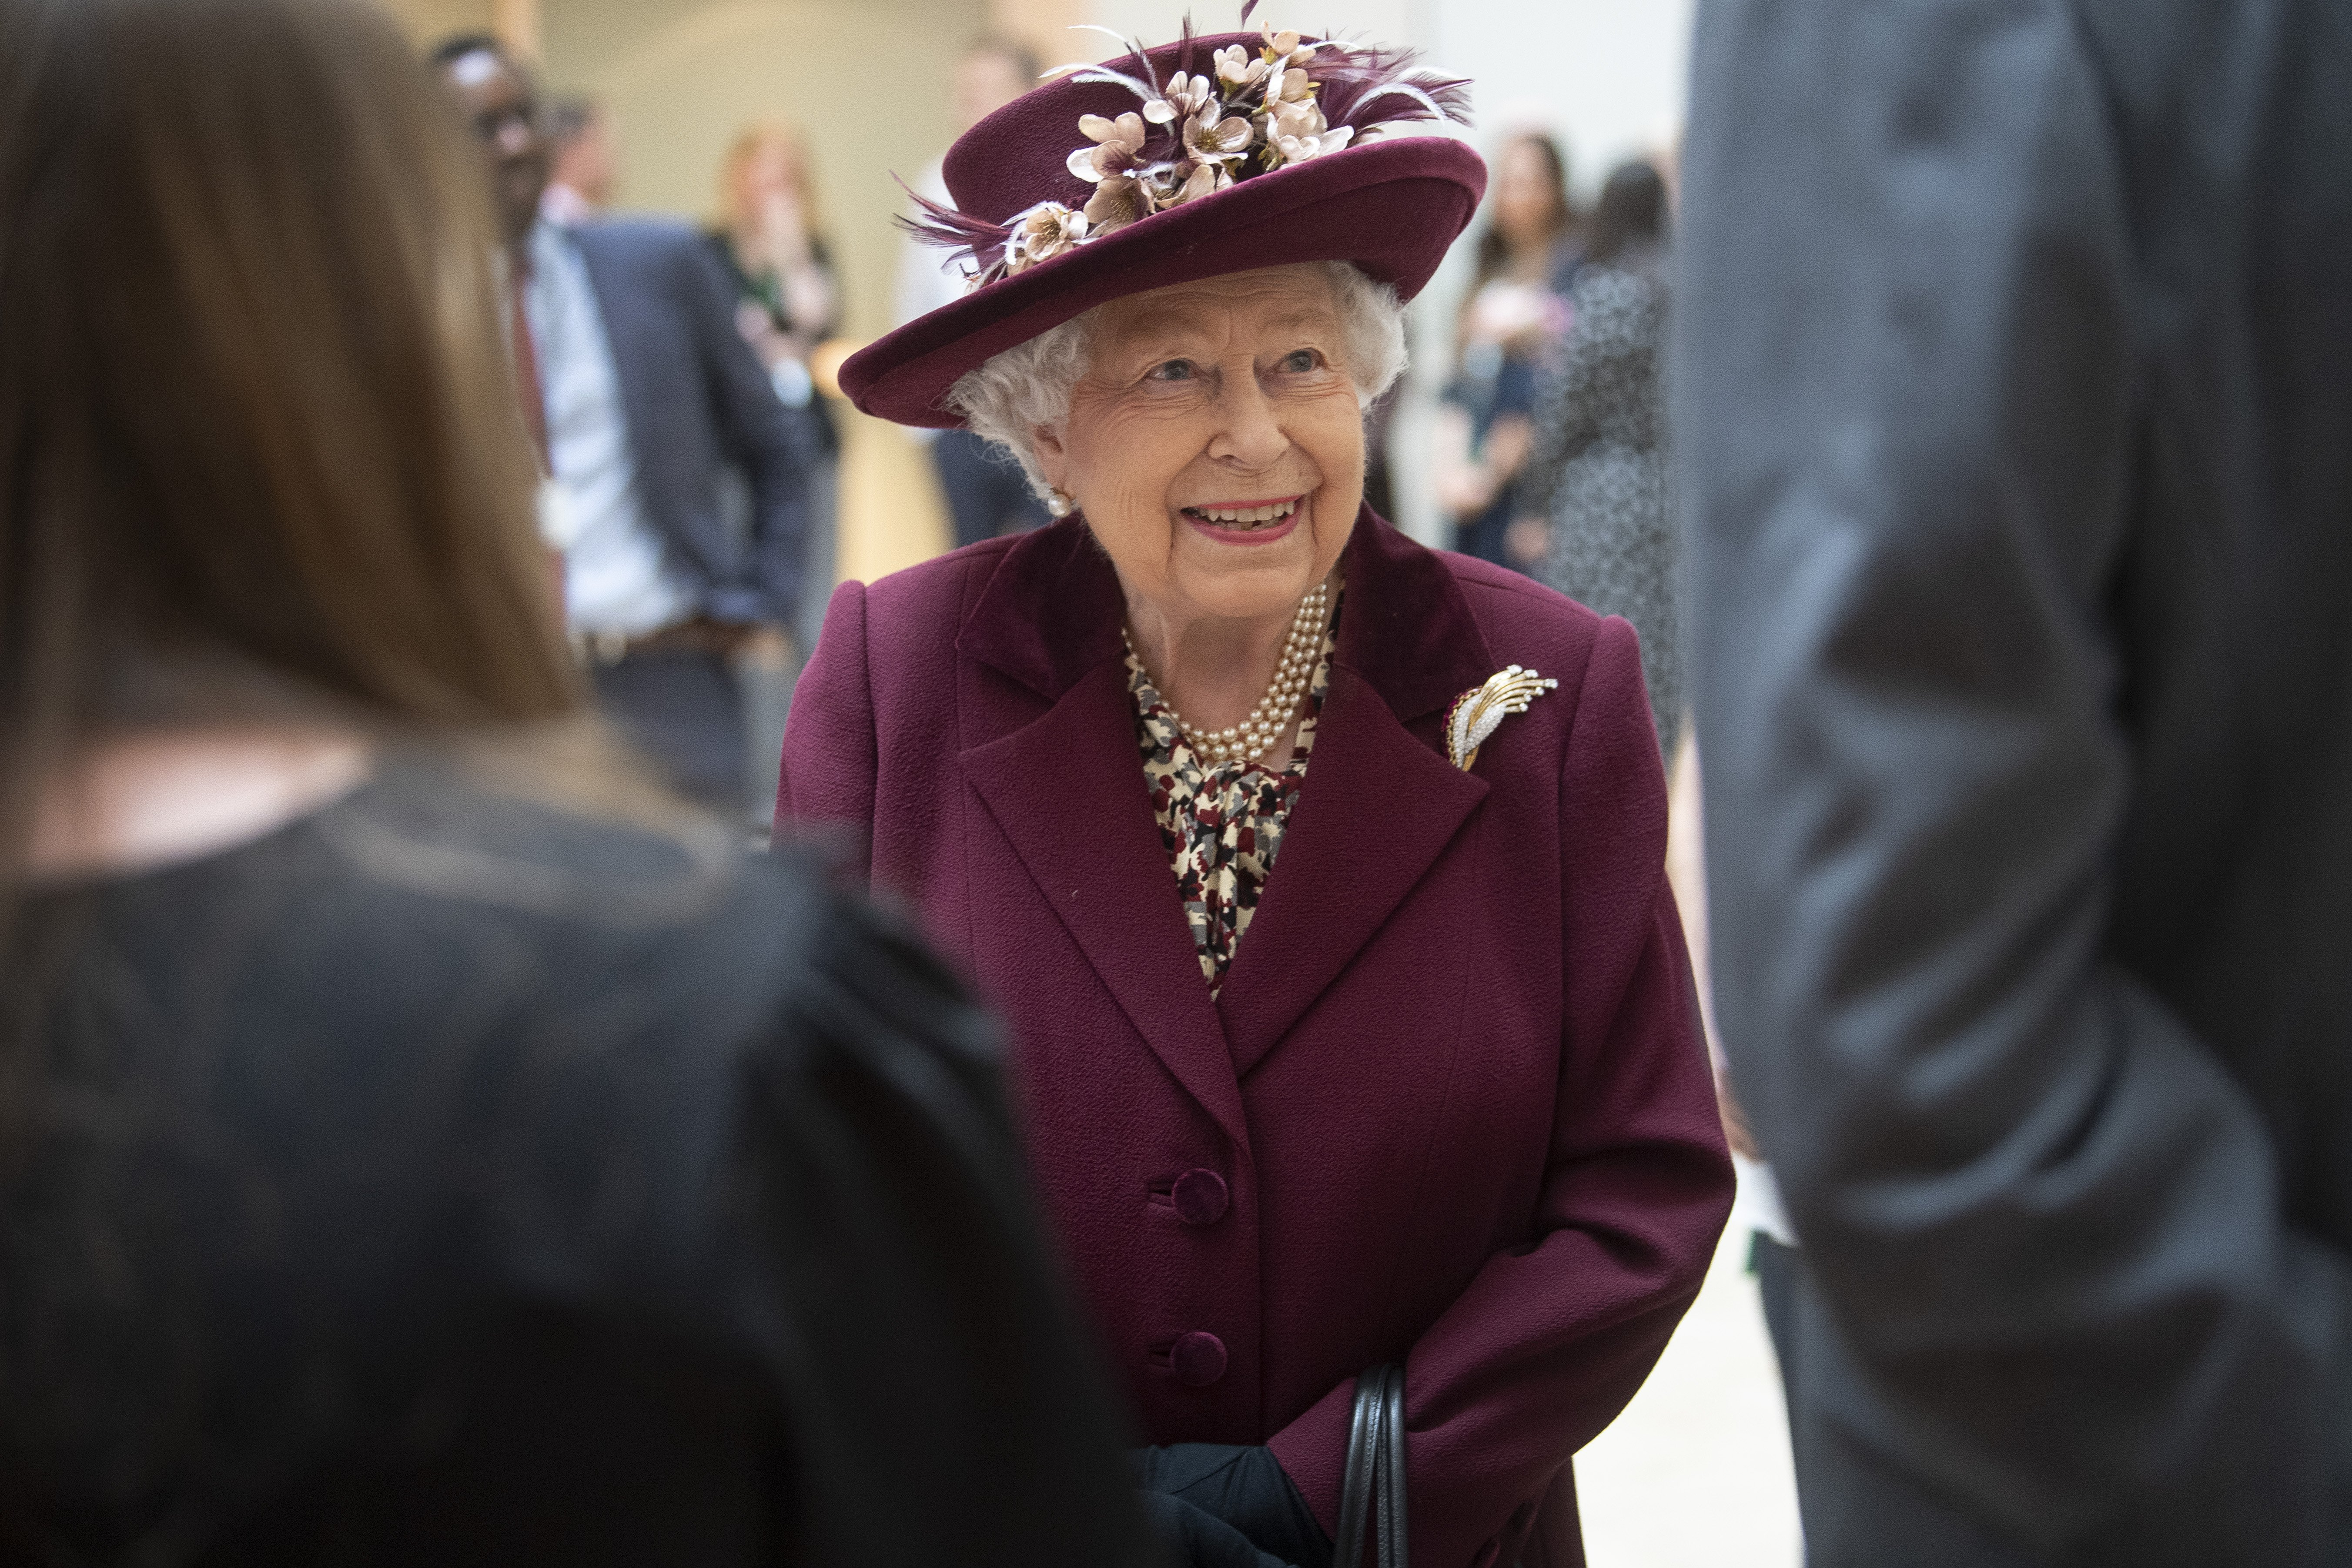 Queen Elizabeth II talks with MI5 officers during a visit to the headquarters of MI5 at Thames House on February 25, 2020 in London, England | Photo: Getty Images